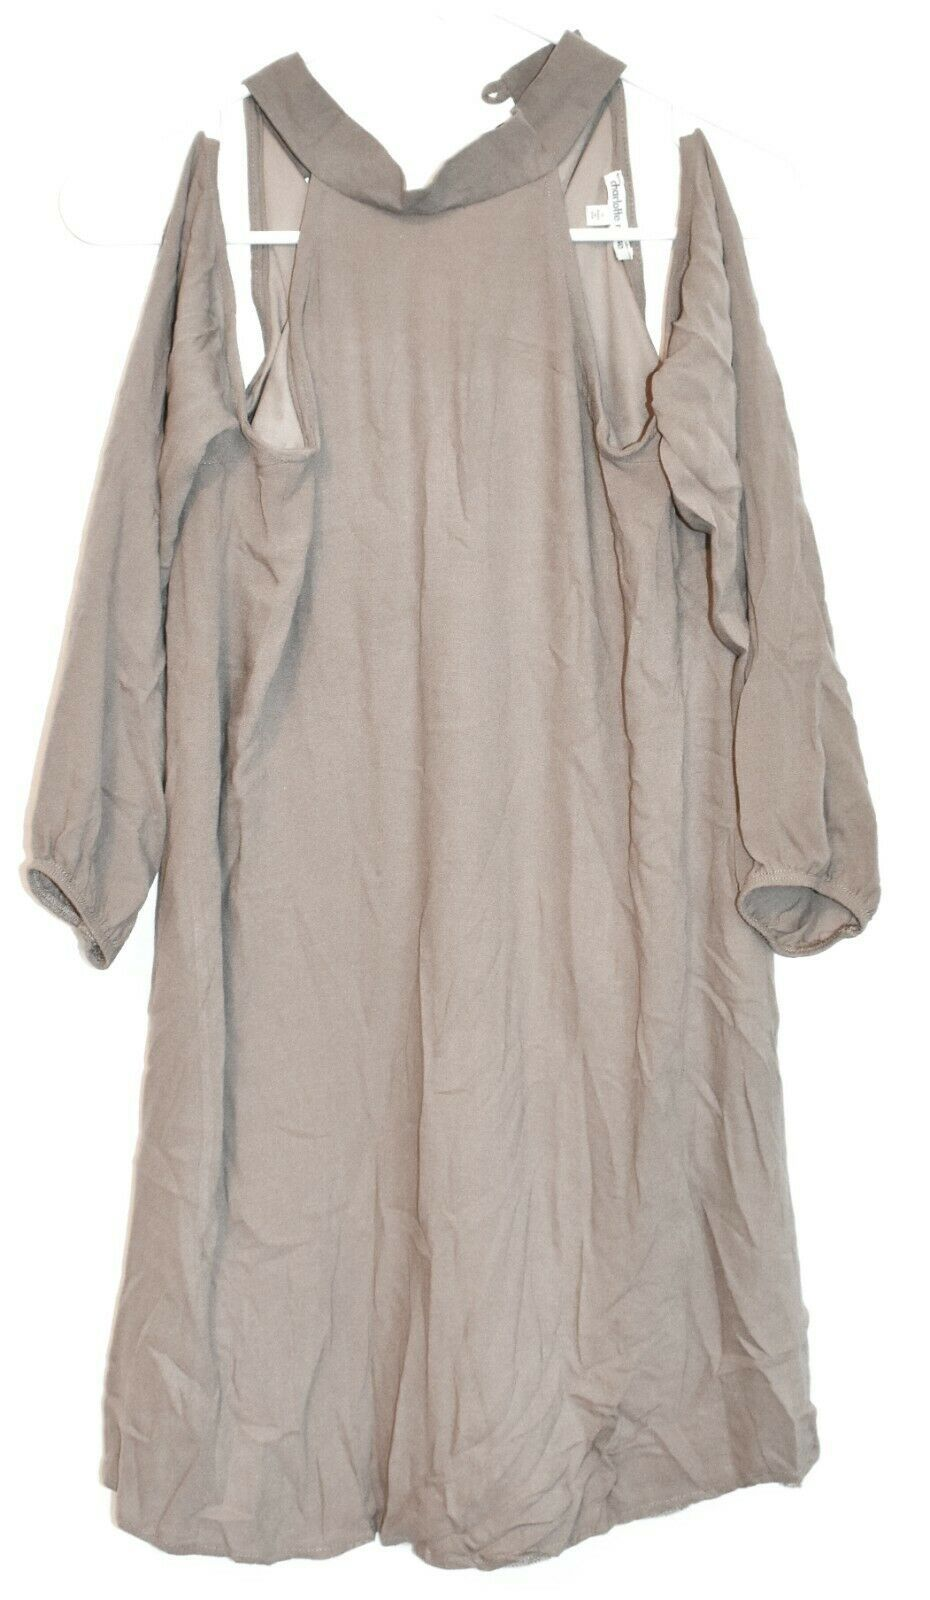 Charlotte Russe Women's Taupe Gray Cold Shoulder Long Sleeve Mini Dress Size S